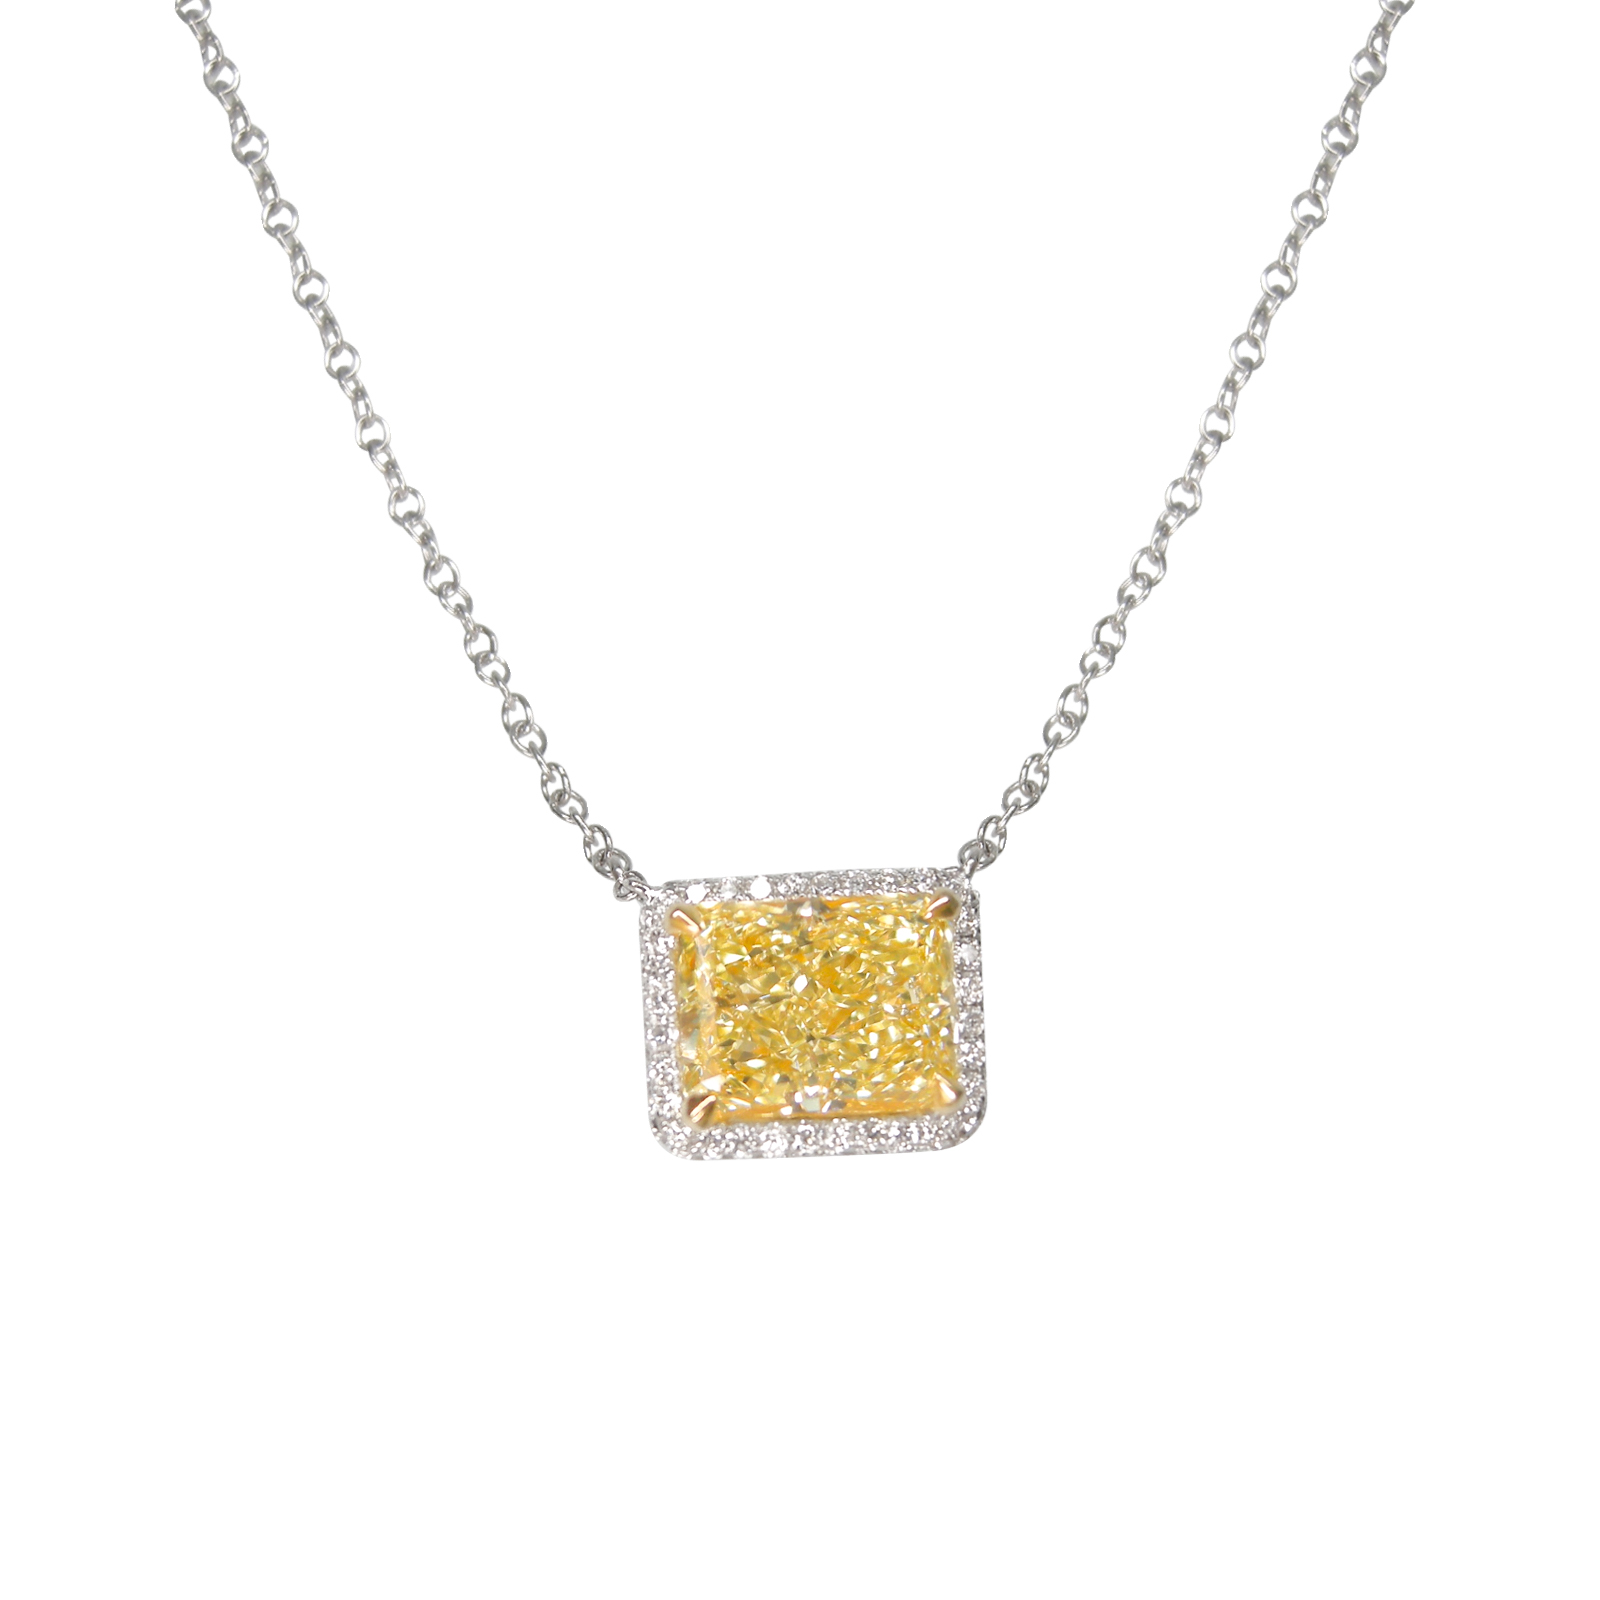 FANCY YELLOW DIAMOND RADIANT CUT WITH MICROPAVE HALO